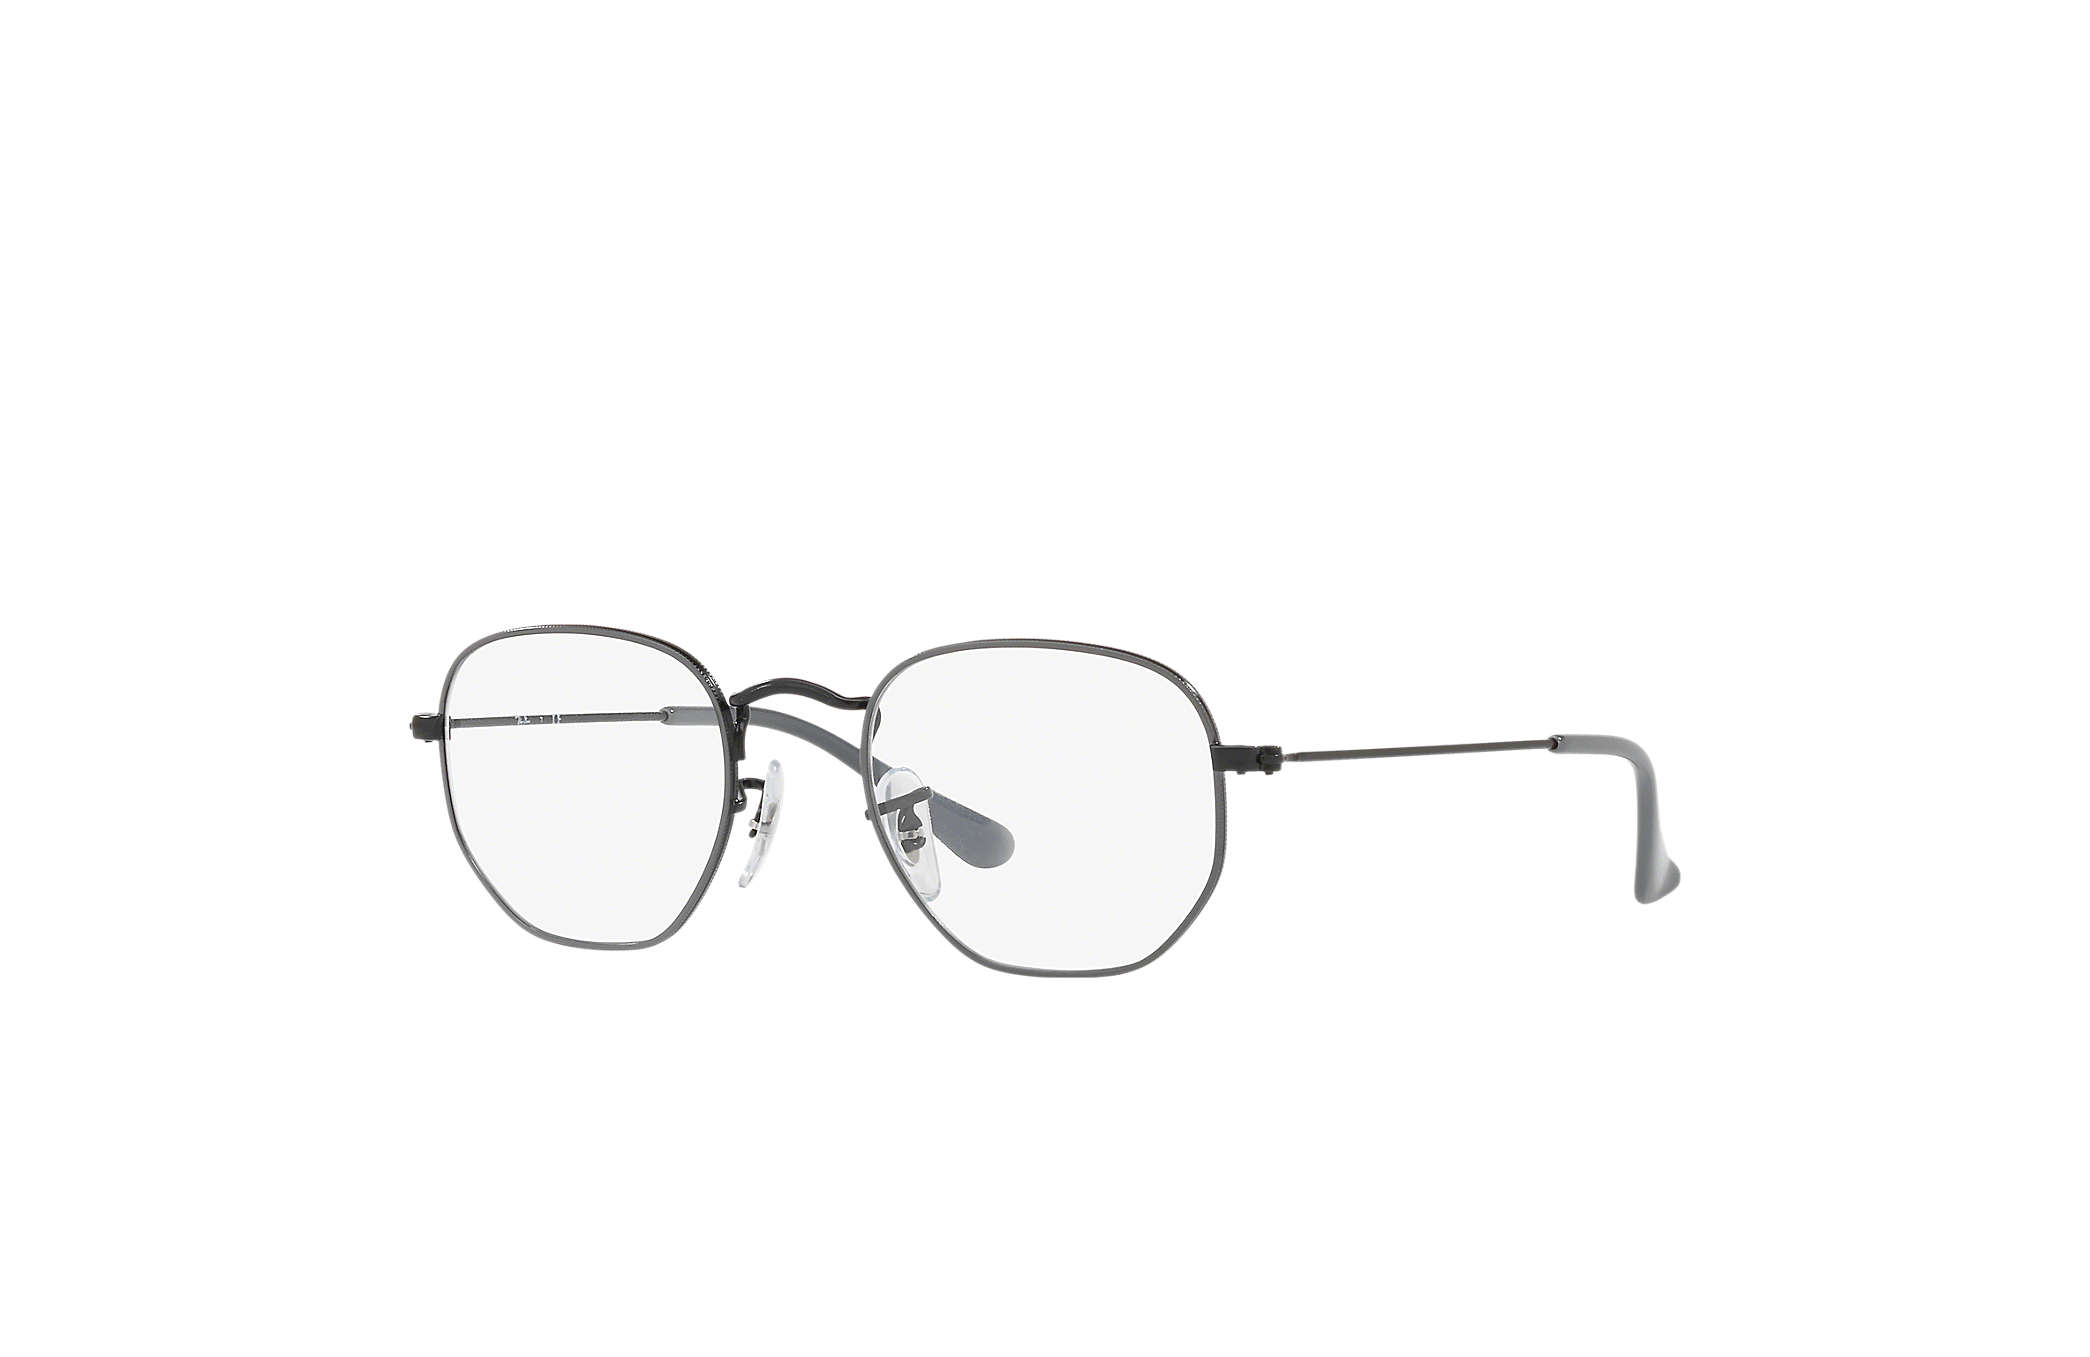 73125bc96a1 Ray-Ban prescription glasses Hexagonal Junior Optics RY9541V Grey ...